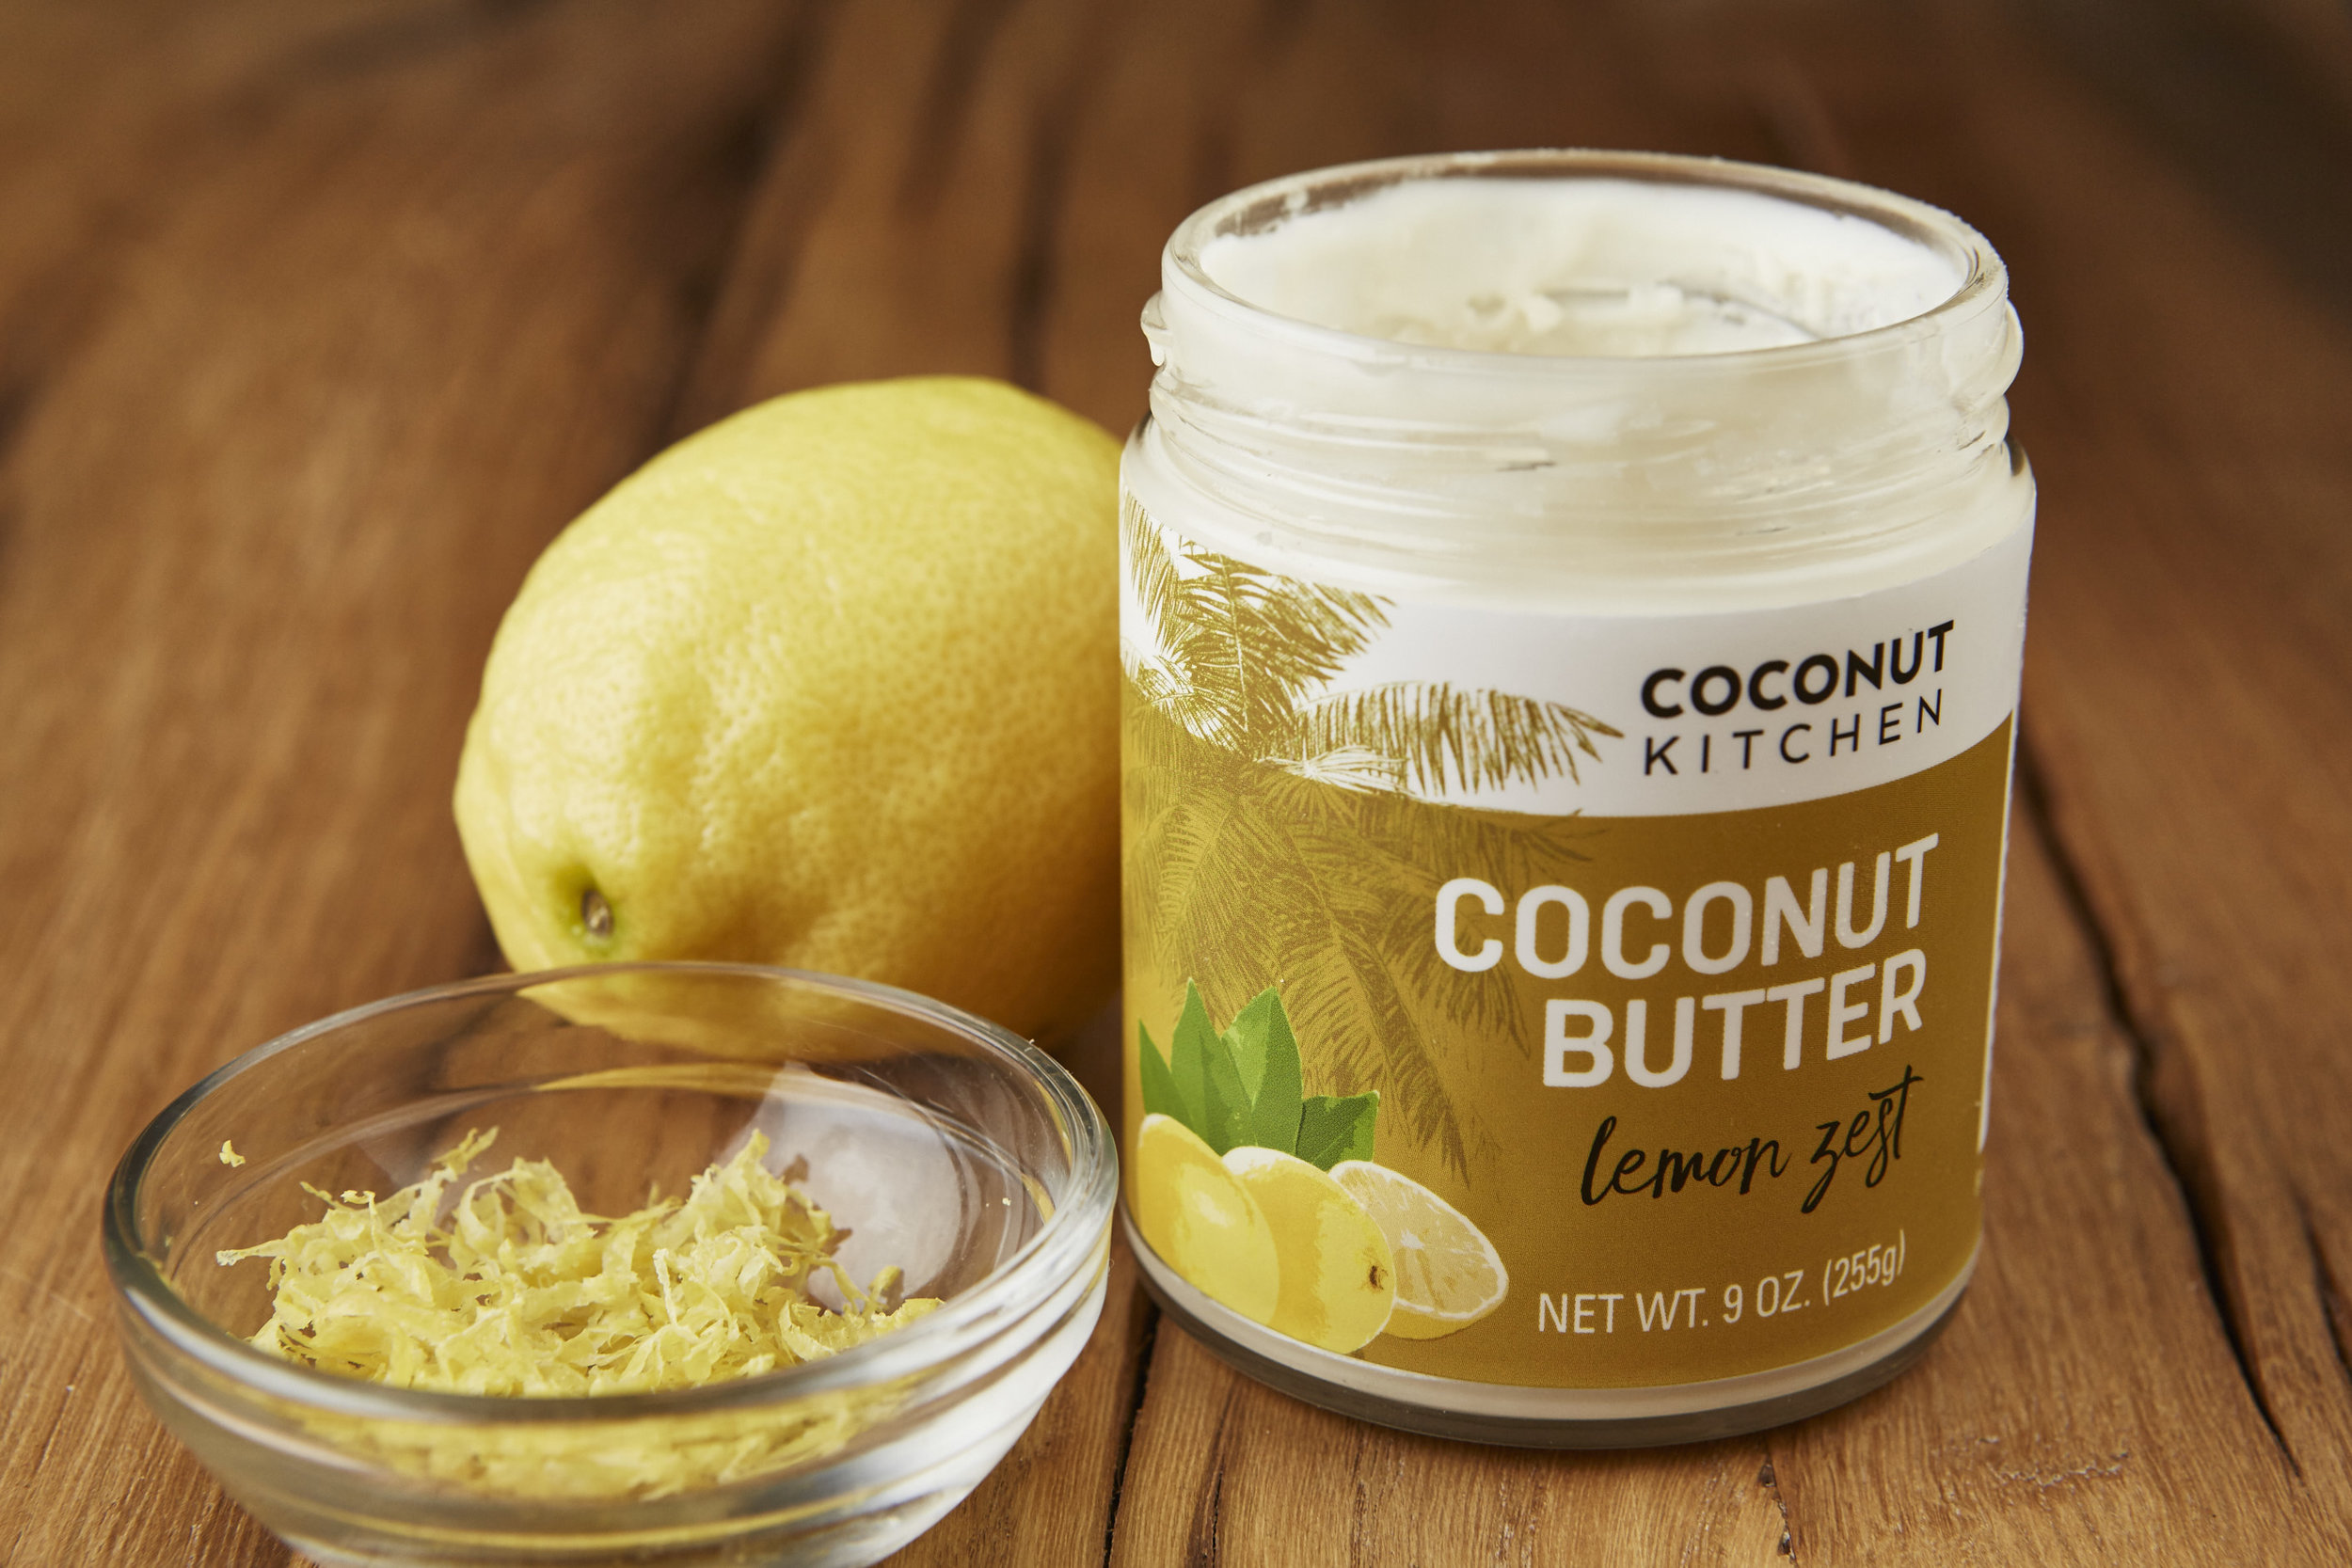 Lemon Zest coconut butter